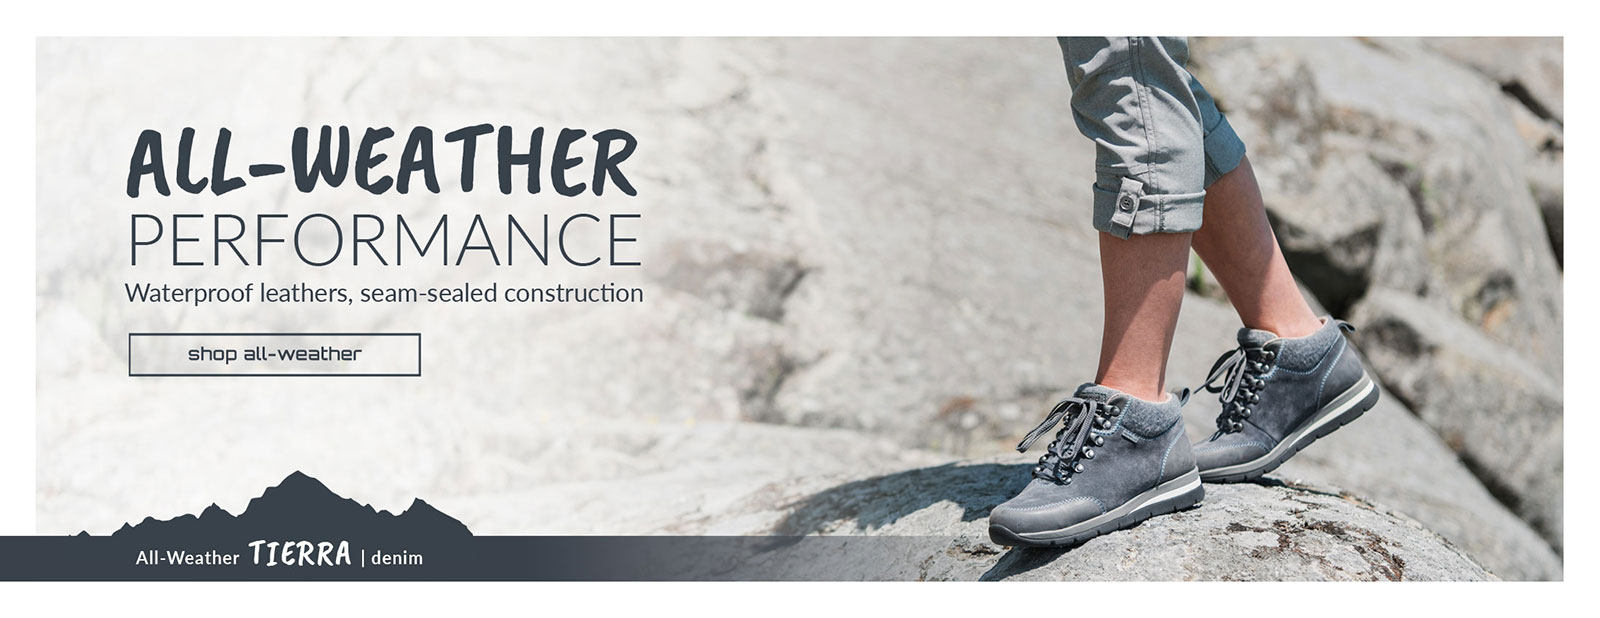 All-Weather Performance. Waterproof Leathers, Seam Sealed Construction. Tierra Boot in Denim. Shop All-Weather